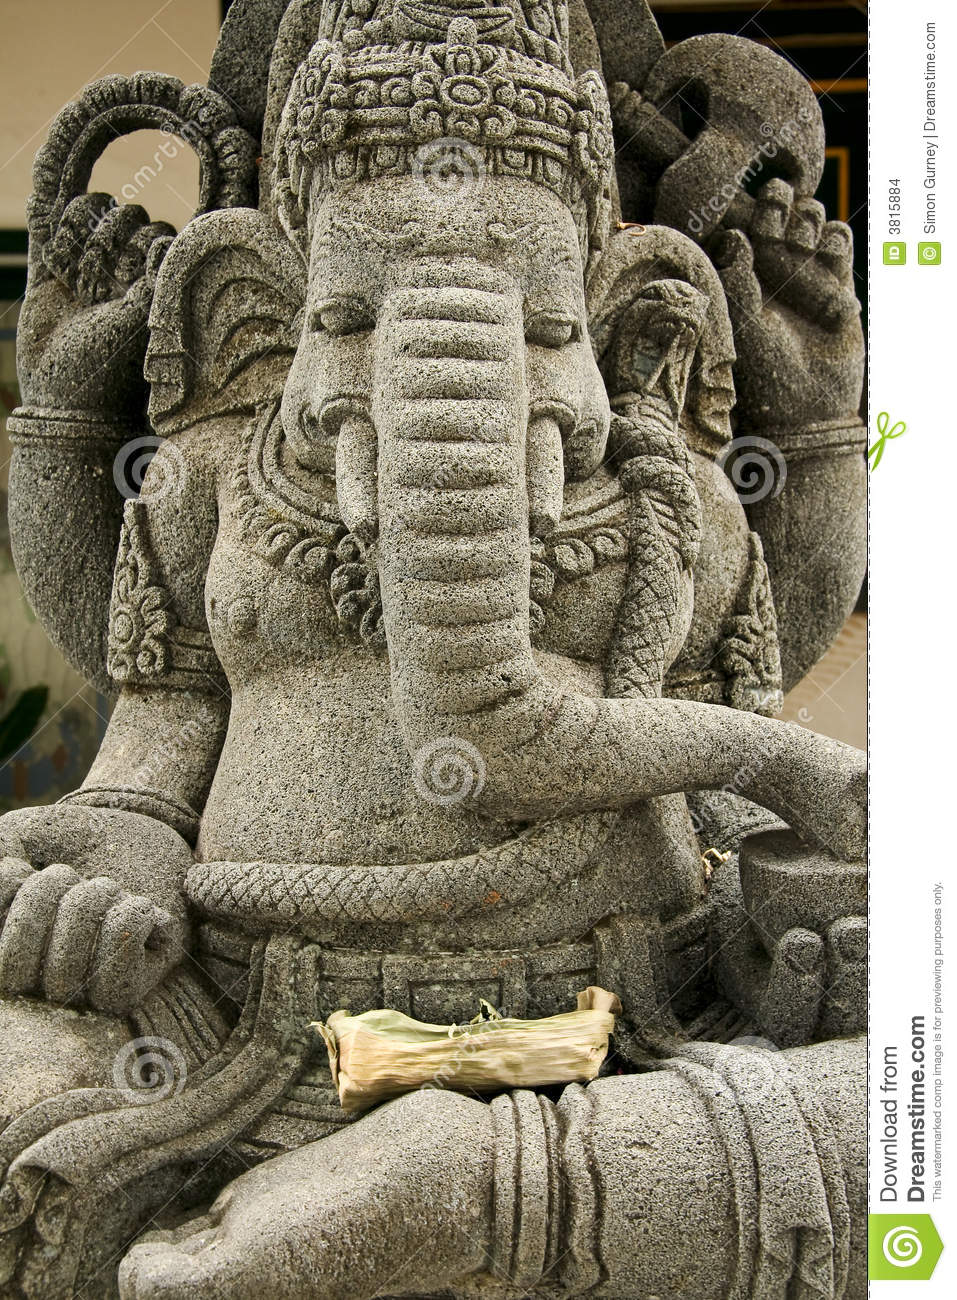 3d God Wallpaper Of Hindu Gods Ganesh Elephant Headed God Statue Stock Images Image